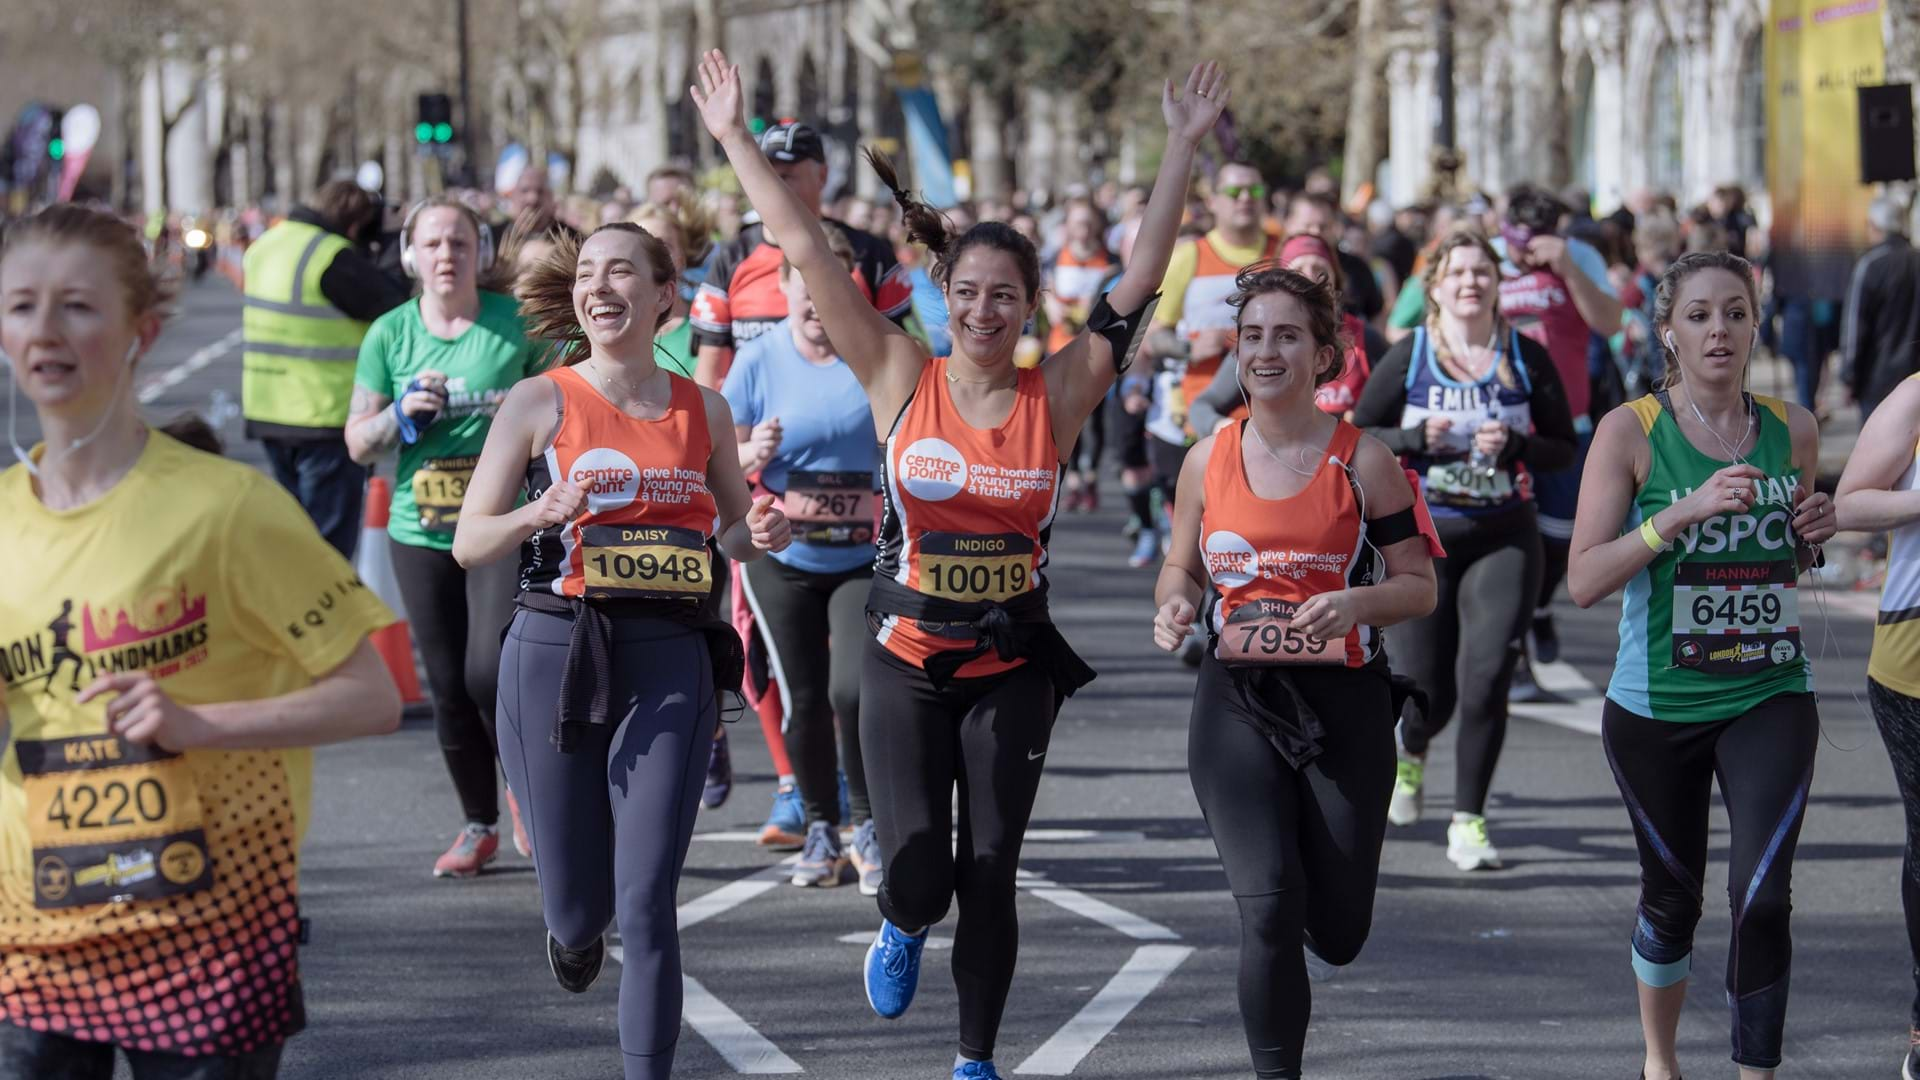 A Centrepoint runner at the London Landmarks Half Marathon.